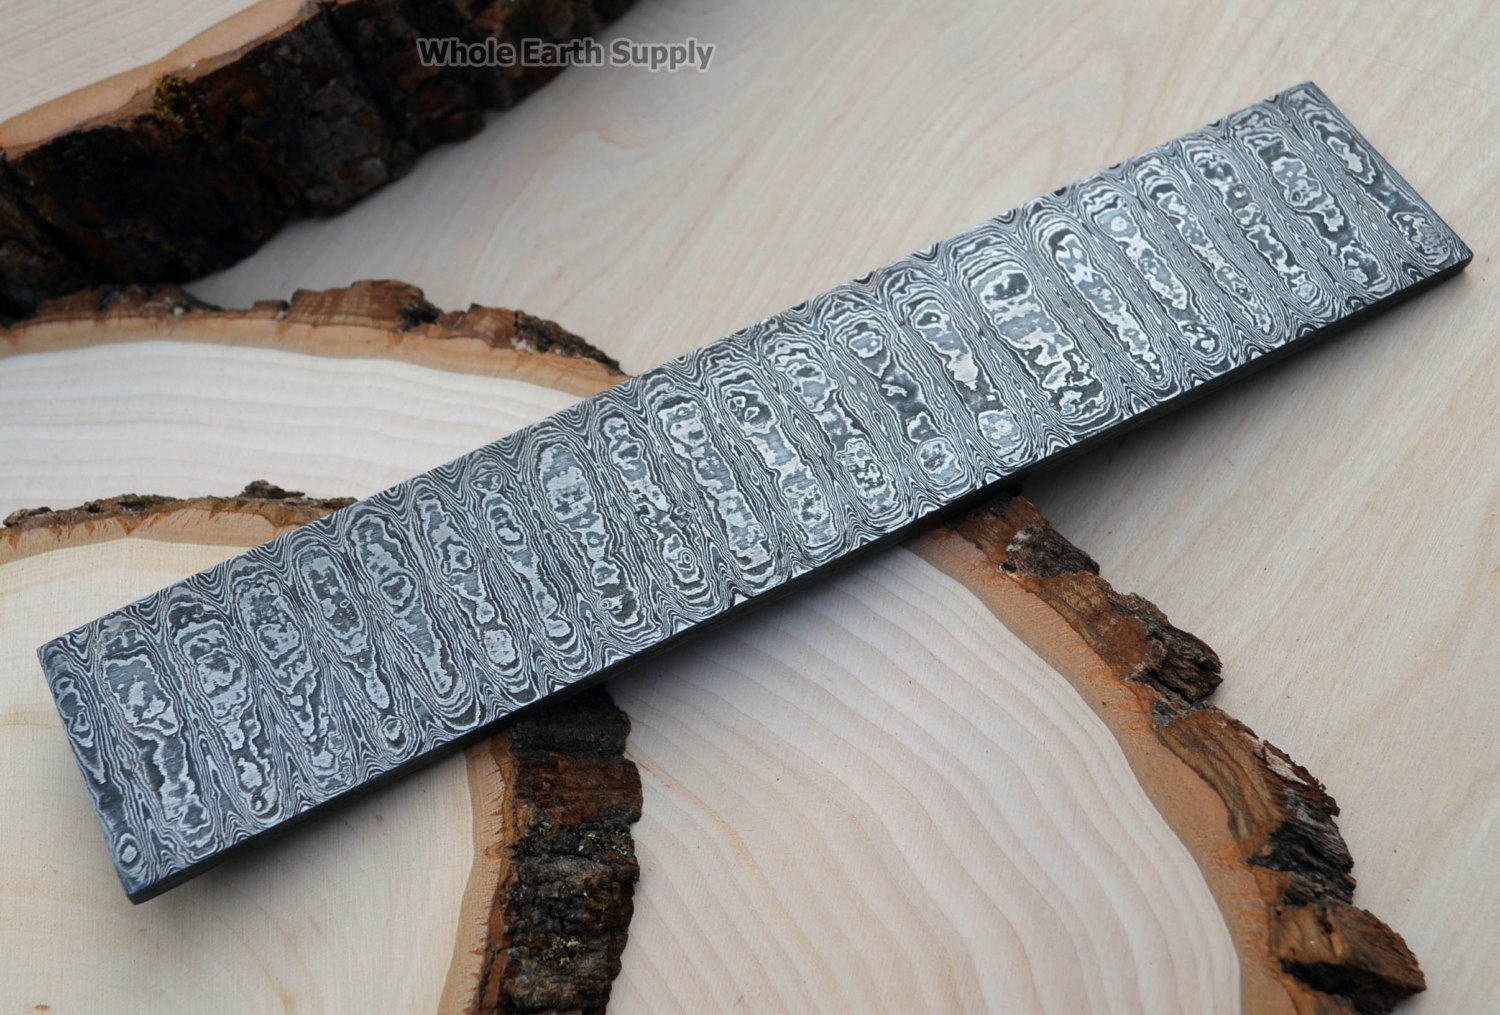 Damascus Knife Making Knives Blank Blade by WholeEarthSupply.